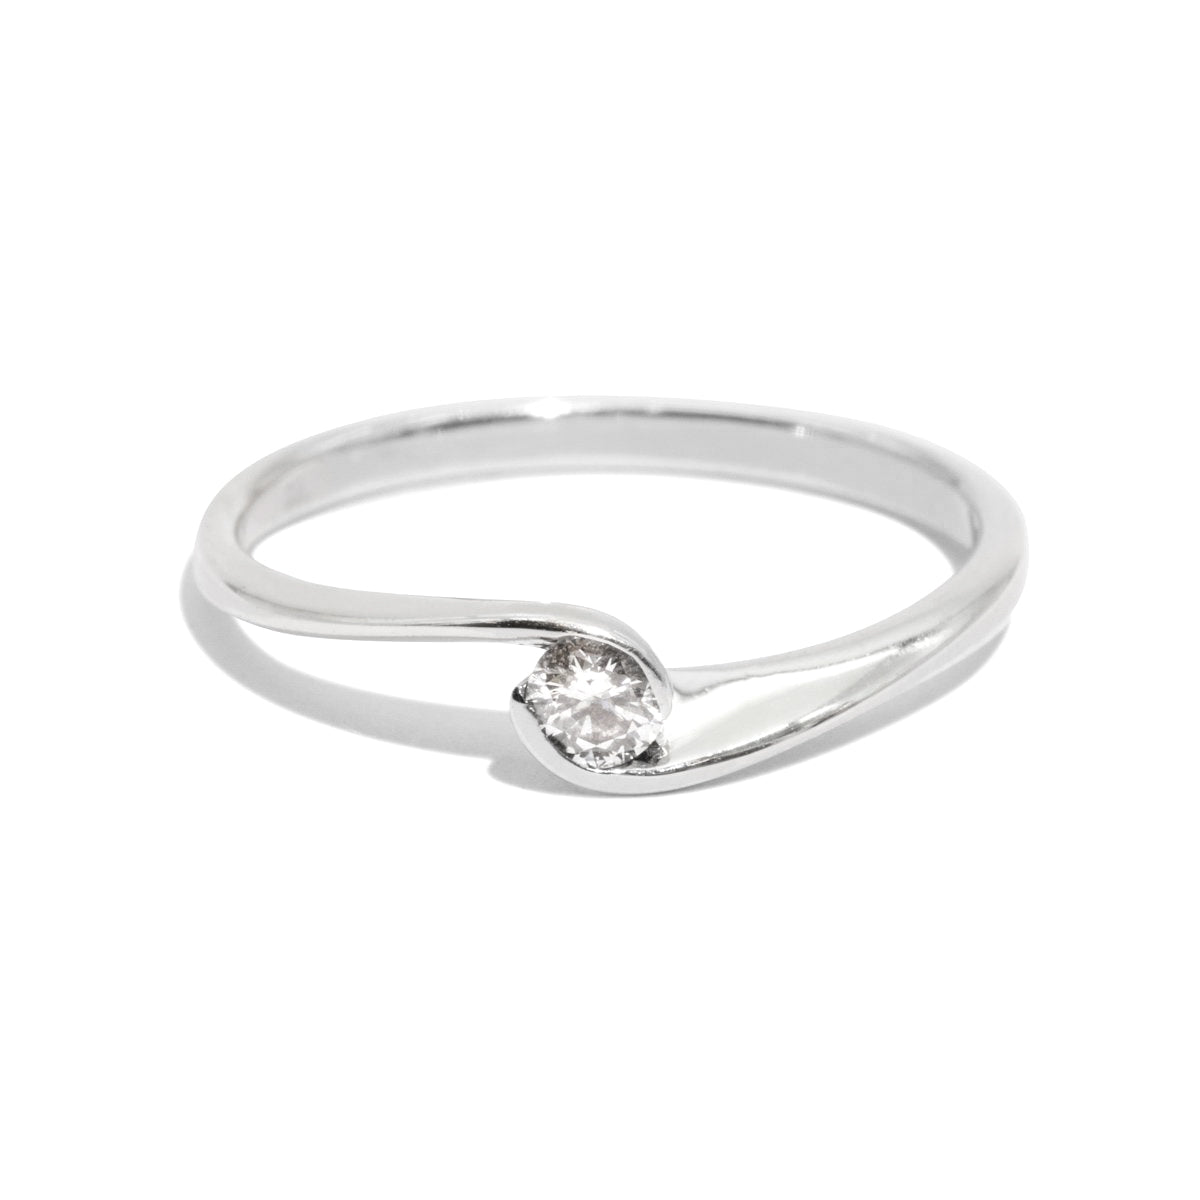 The Lyra Vintage Diamond Ring